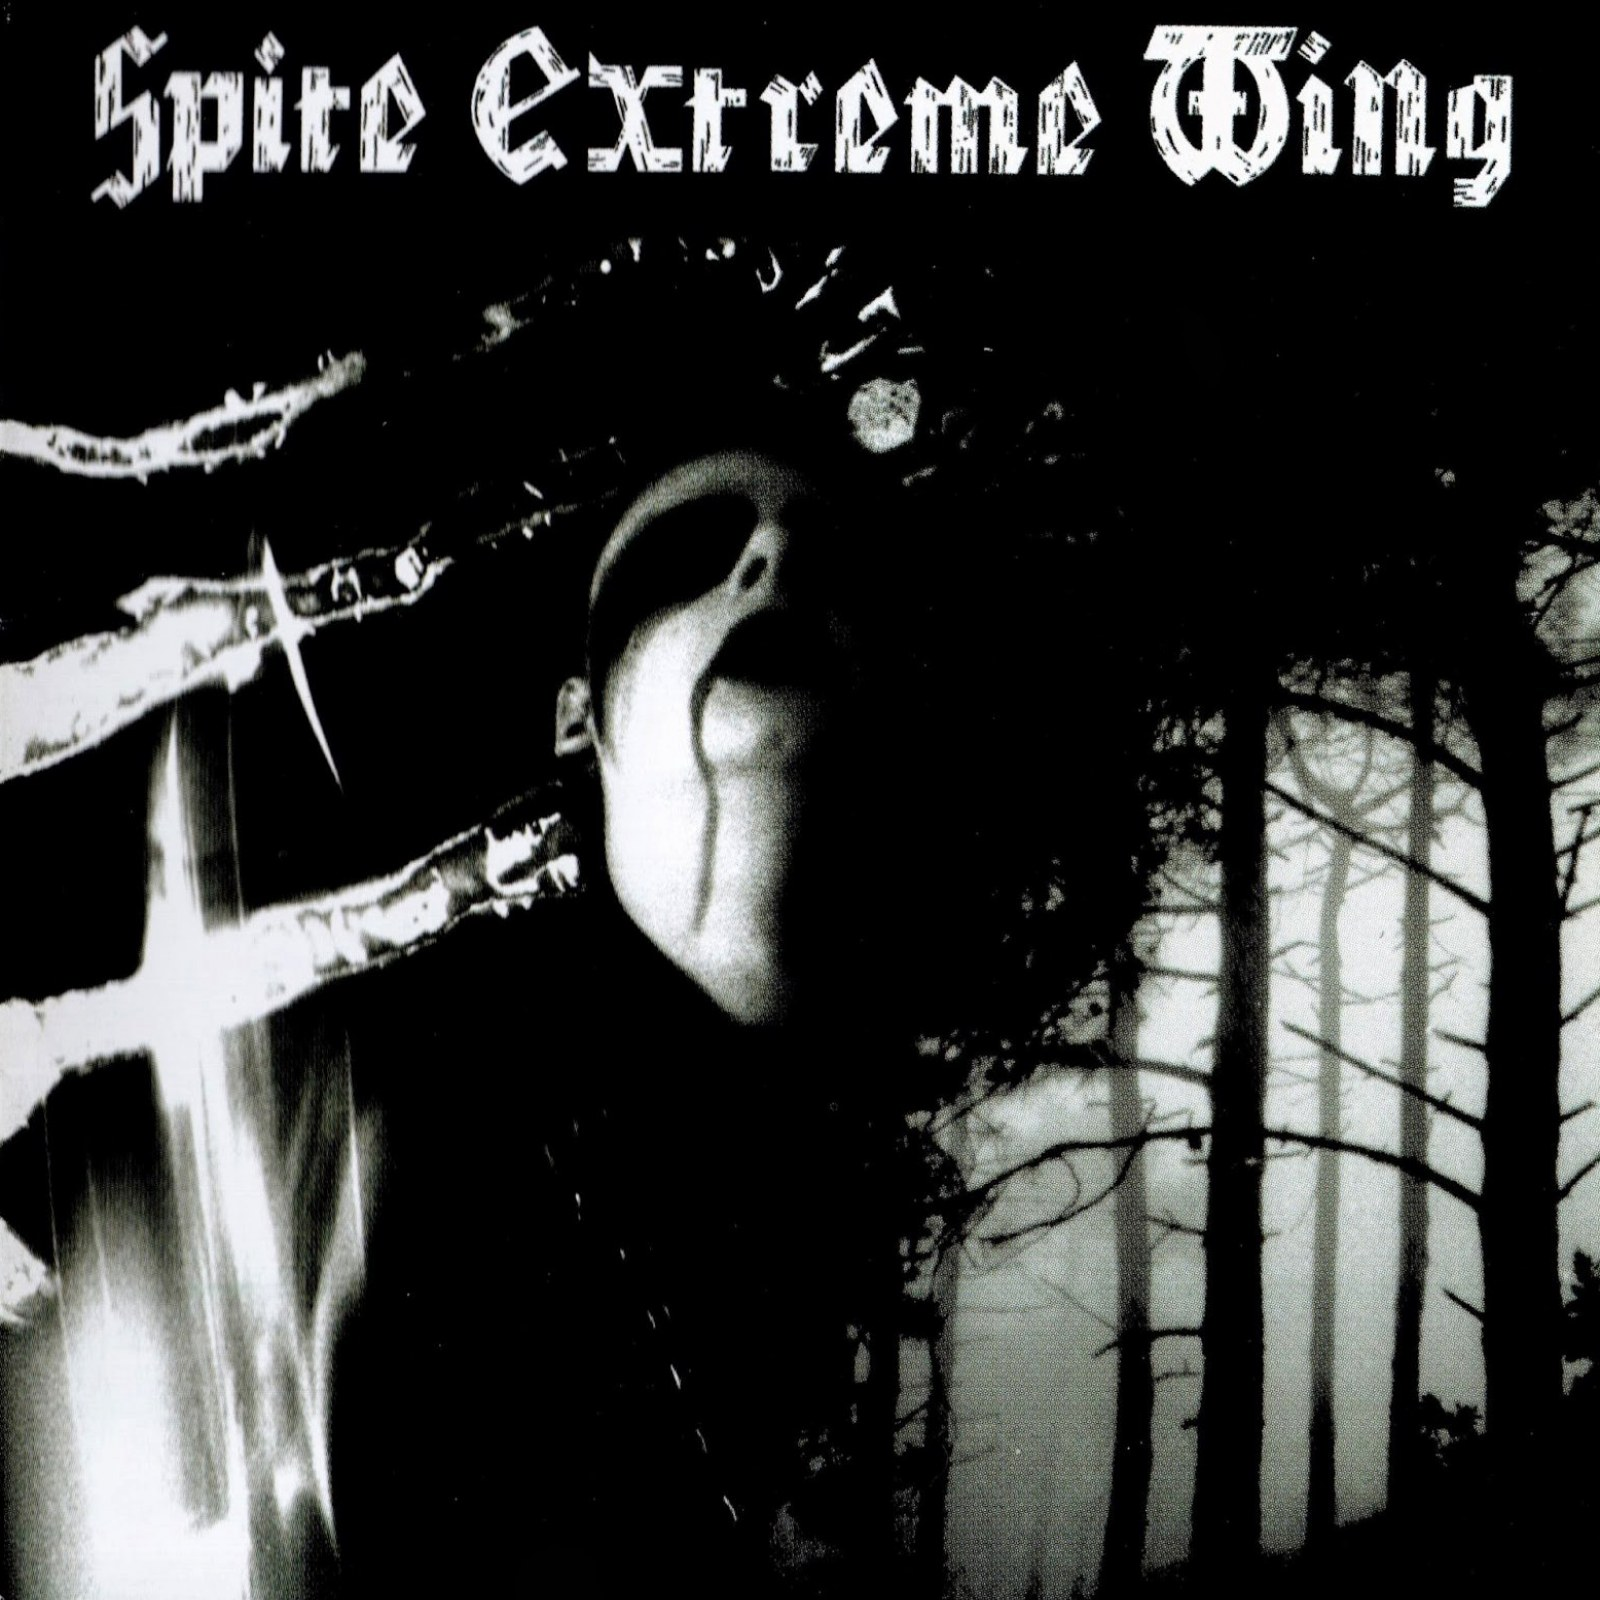 Review for Spite Extreme Wing - Non Dvcor, Dvco